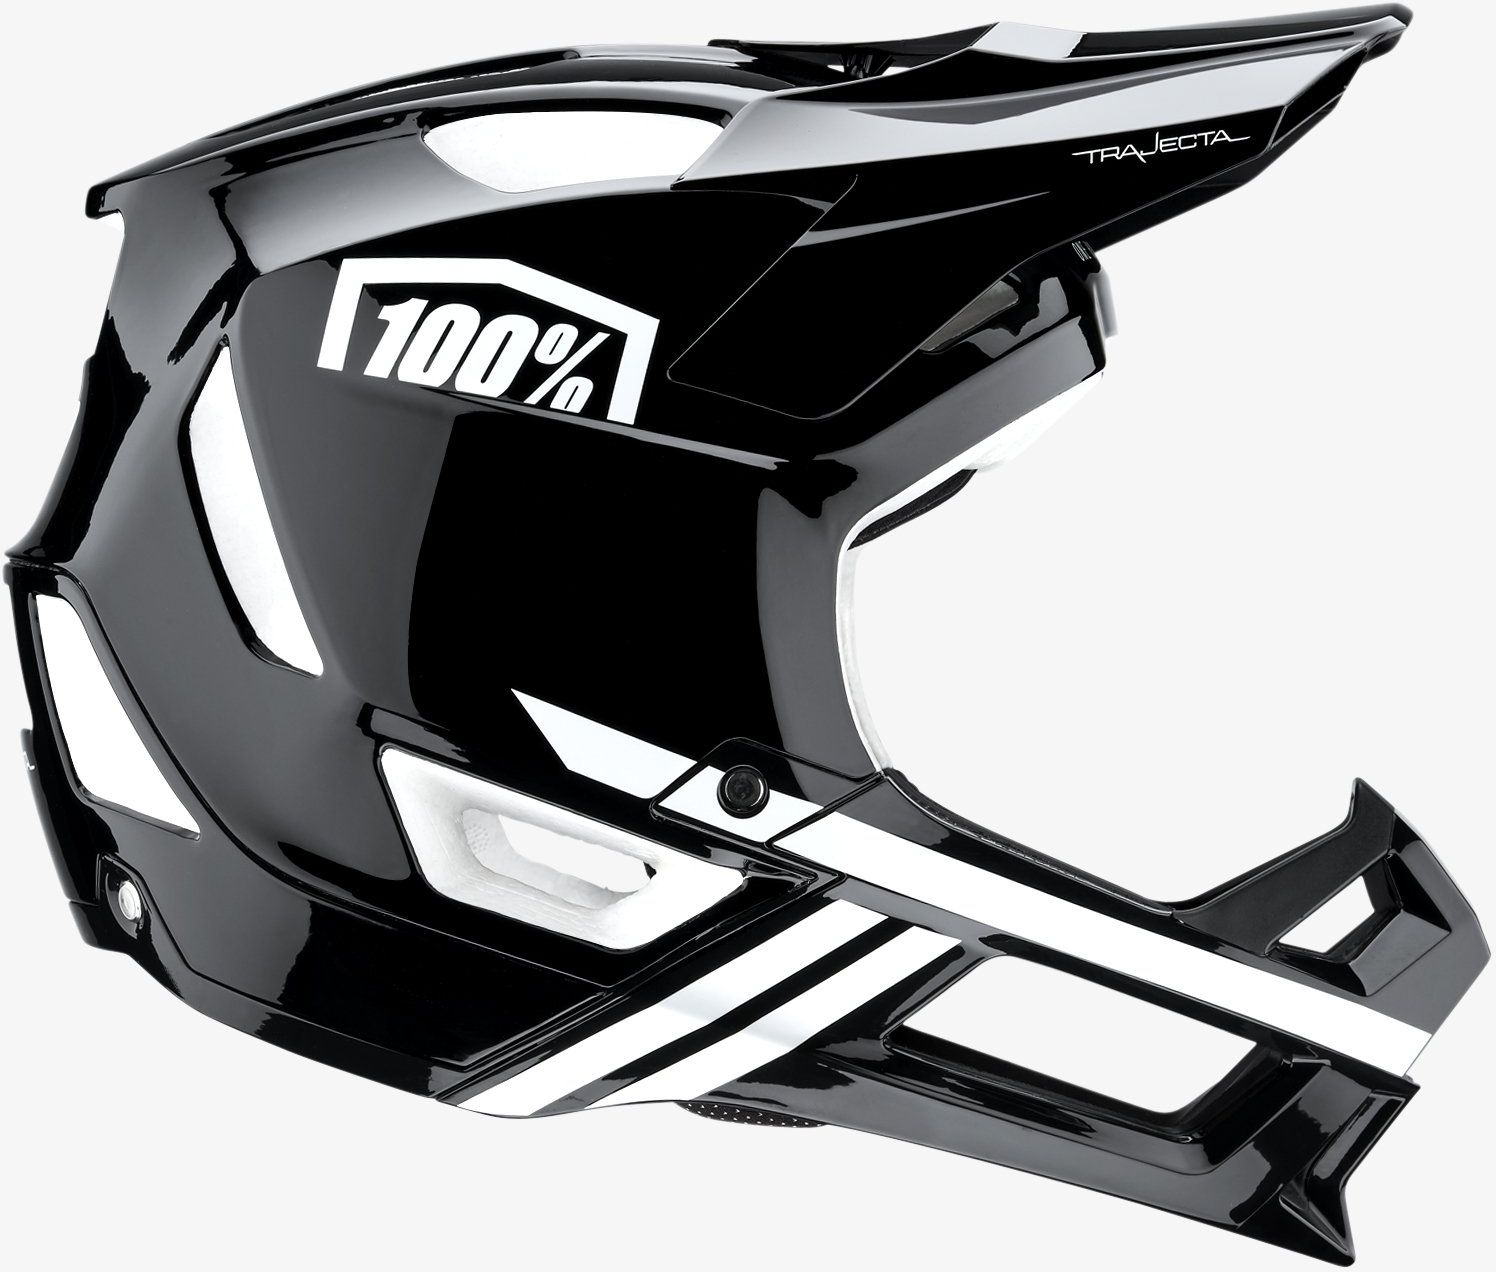 100% Trajecta - Black/White 58-61